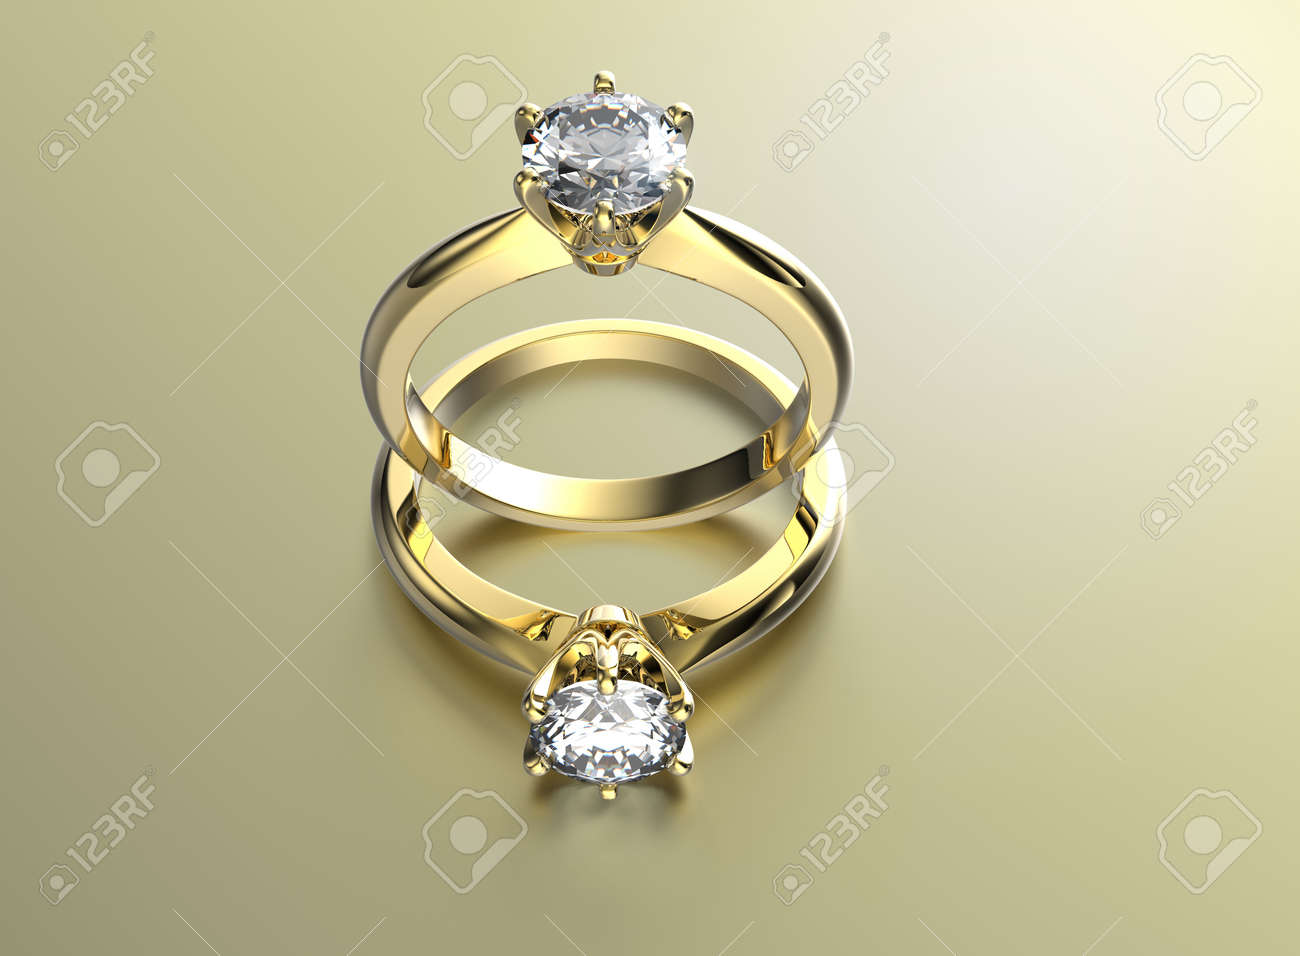 ring diamond right p ye golden hand rings ladies engagement gold